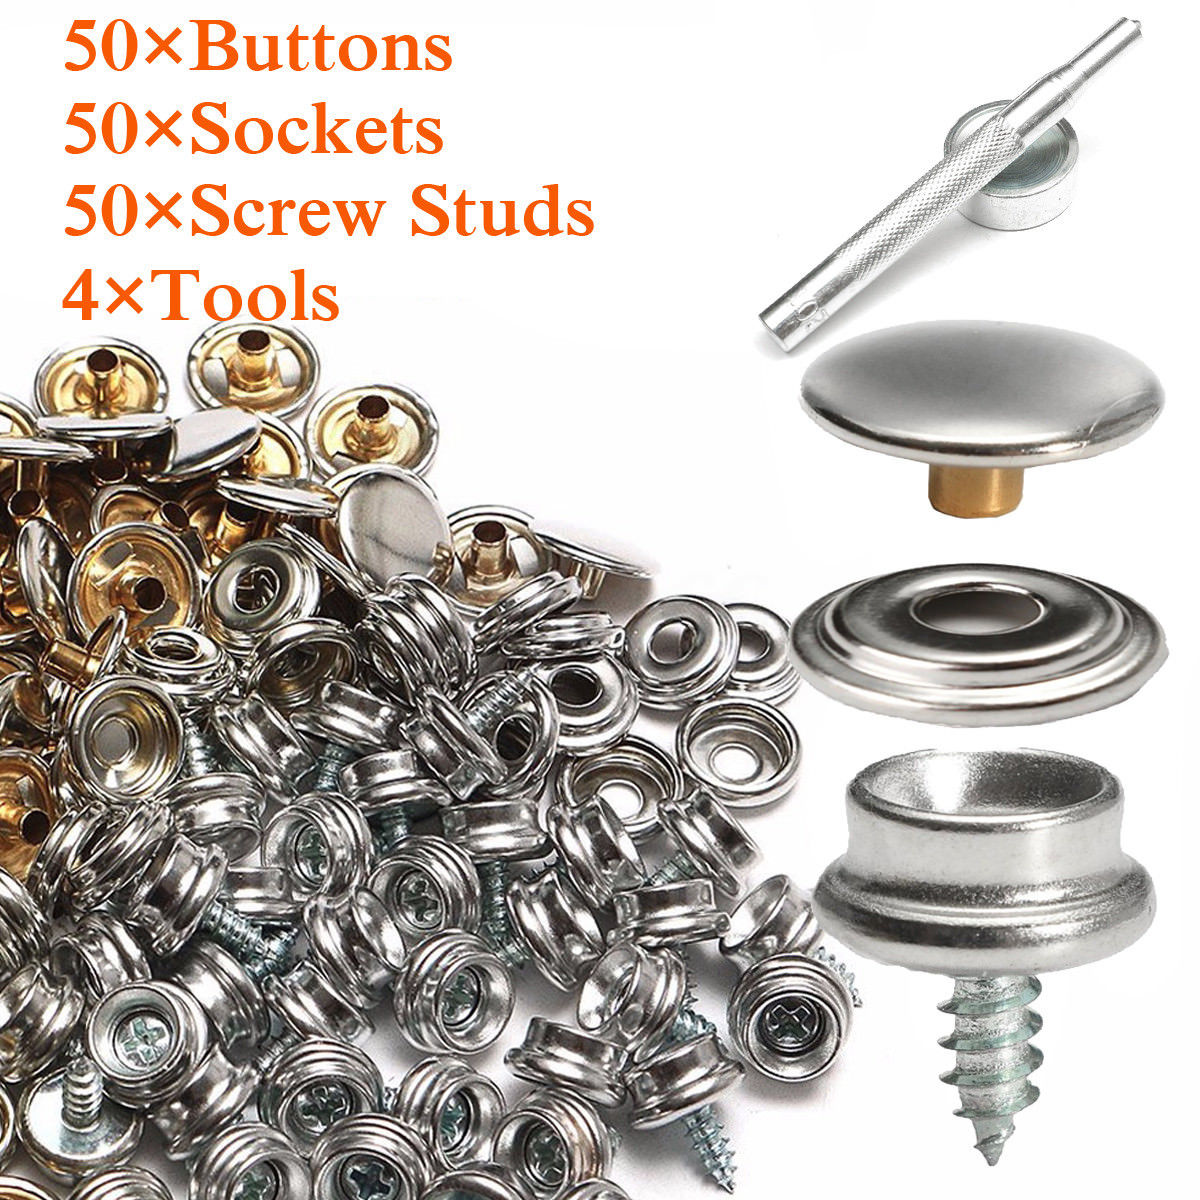 Hearty 15mm Snap Fastener Button Screw Studs Kit For Boat Cover Home Improvement Tent Boat Parts & Accessories